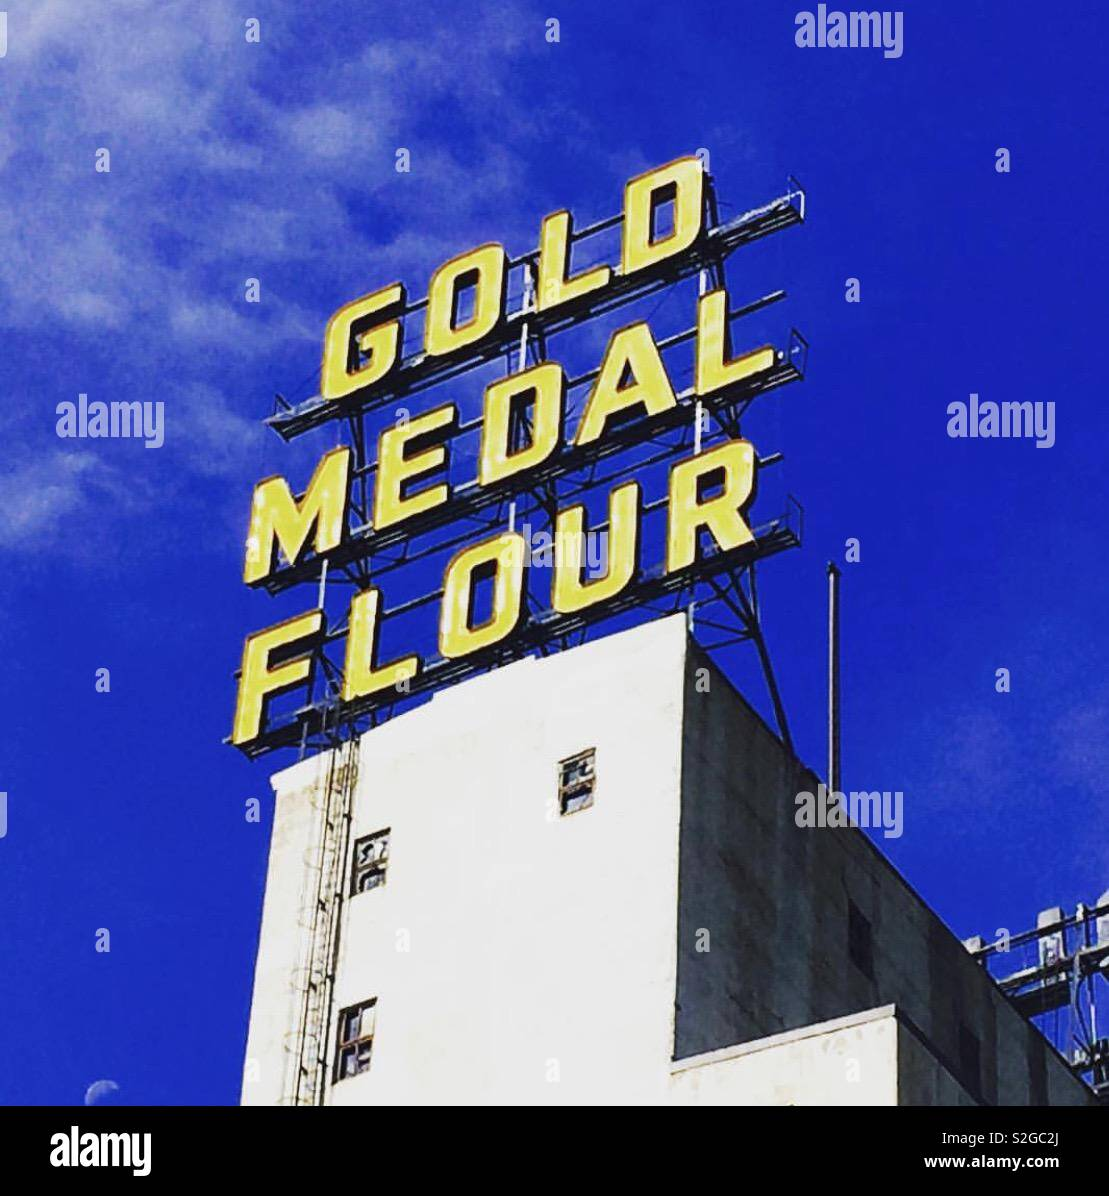 Gold medal flour - Stock Image